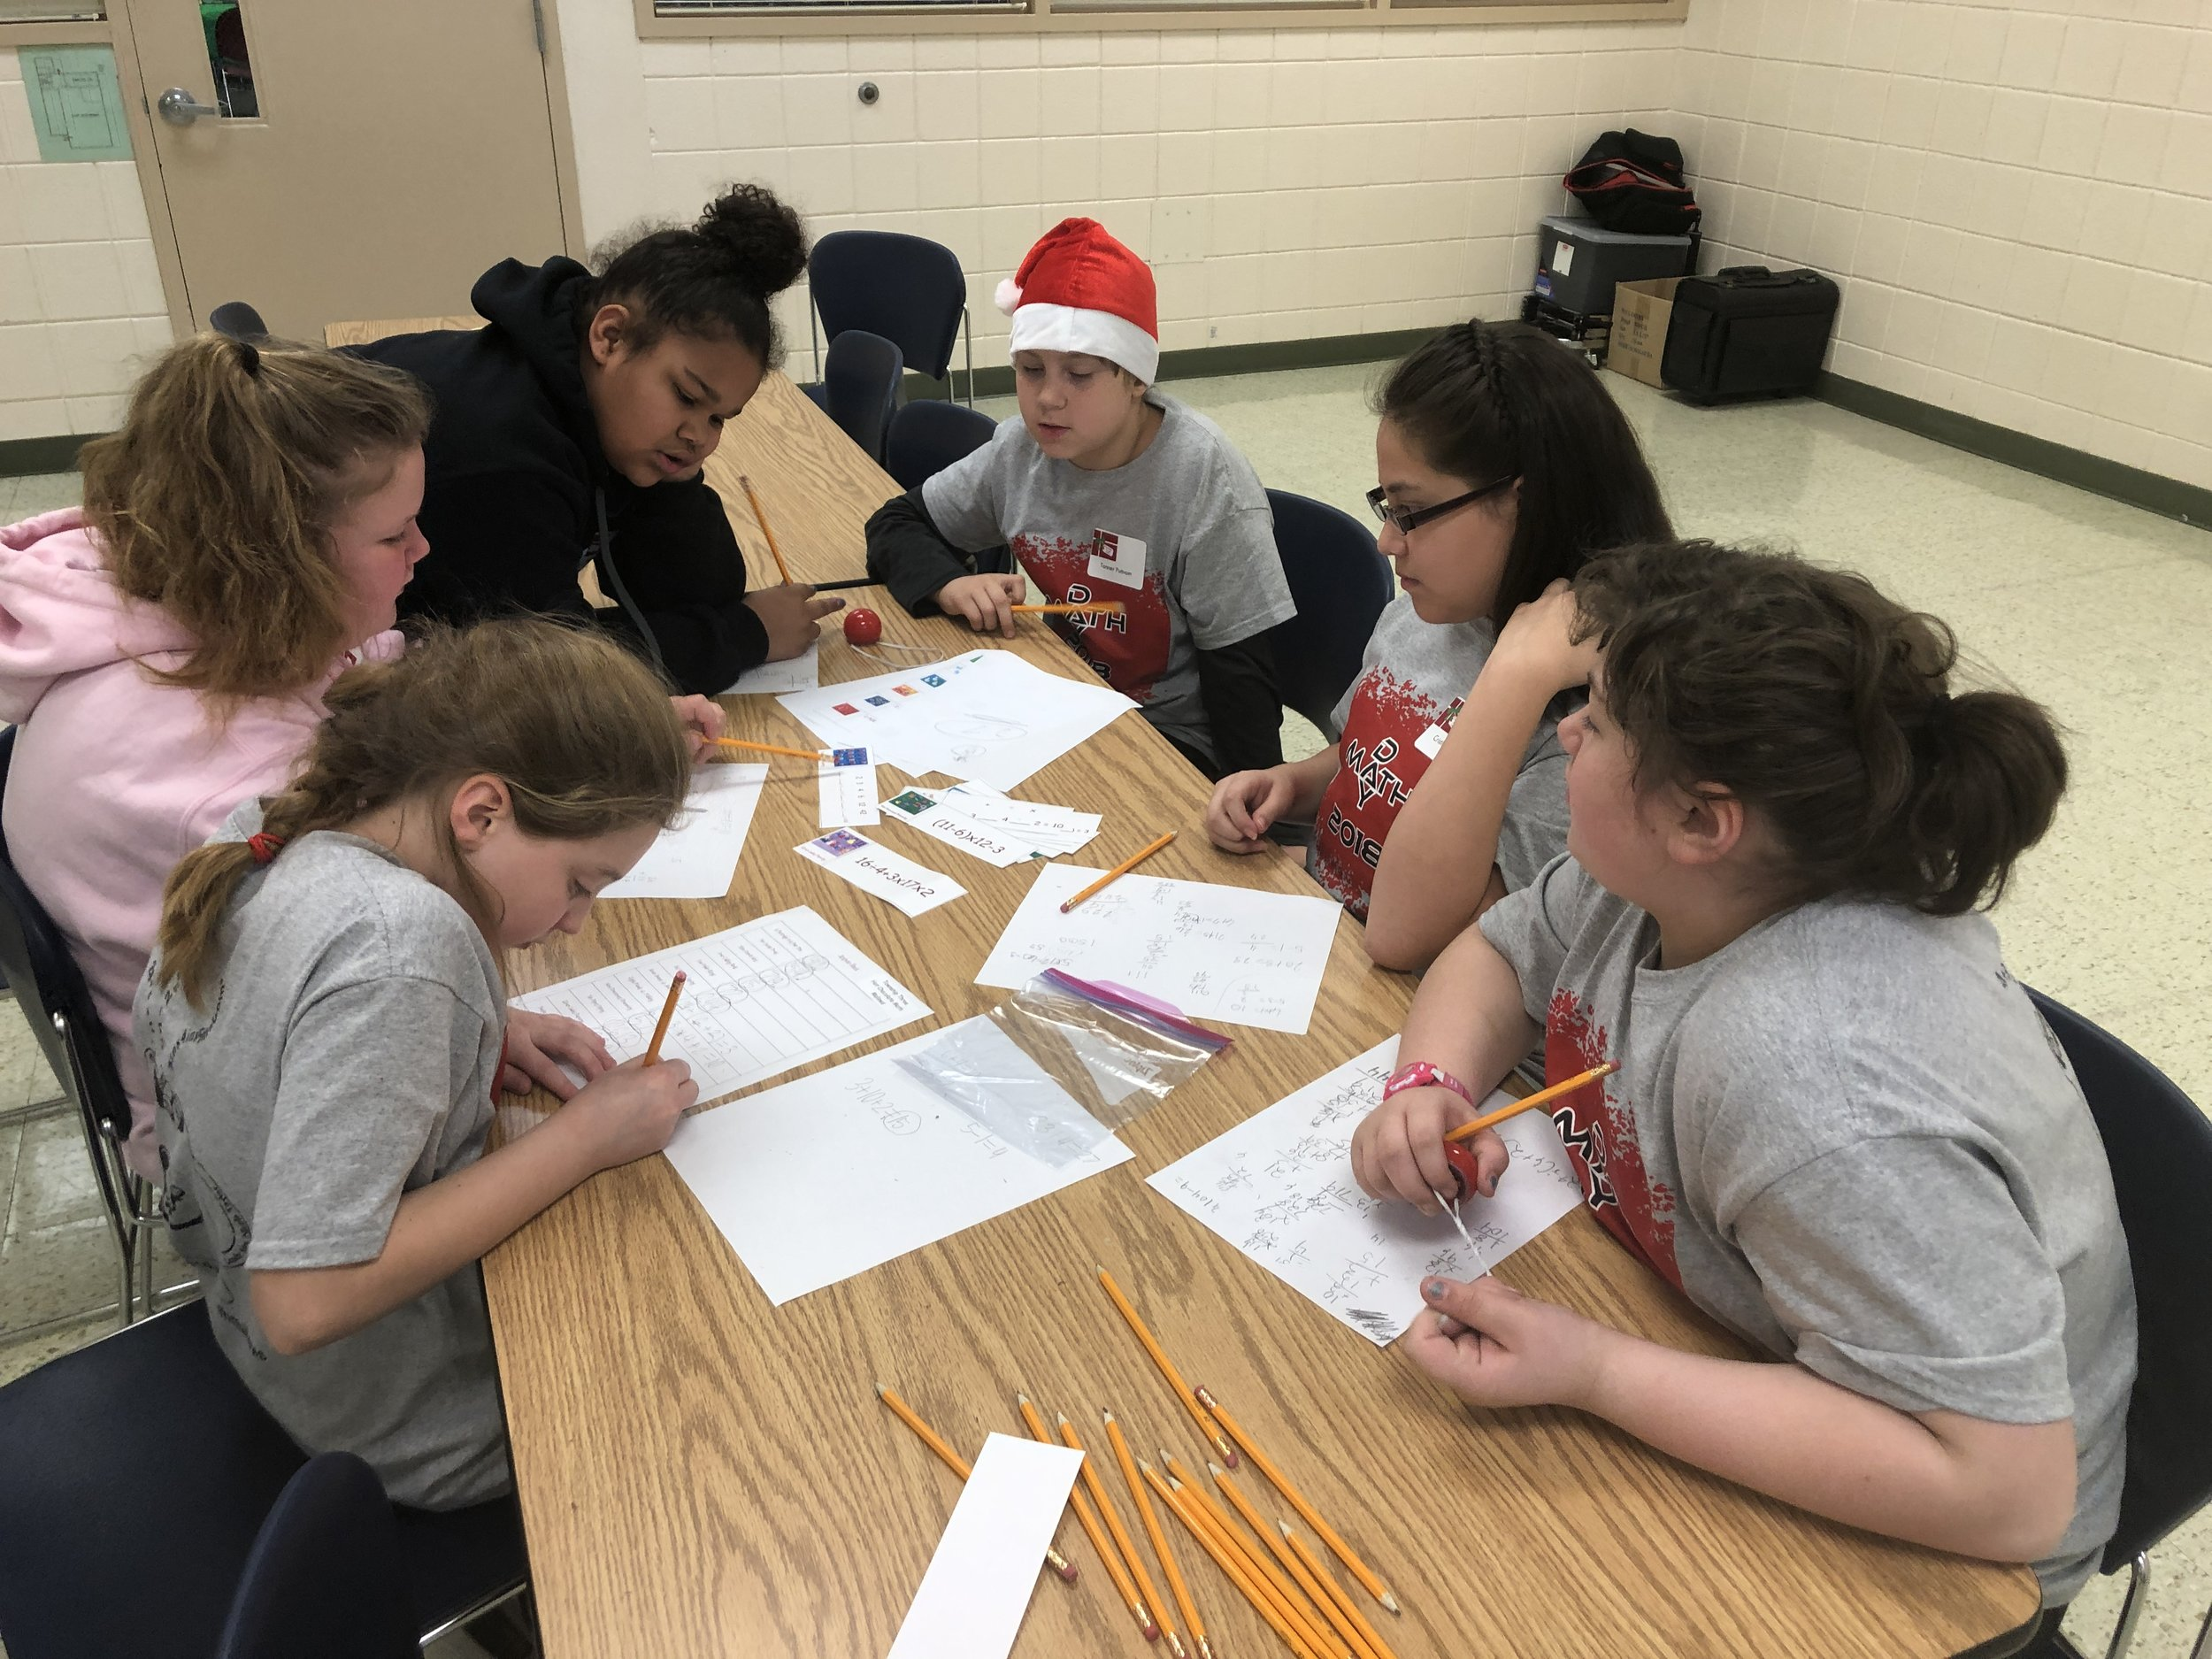 teams-are-making-progress-at-the-annual-ccs-math-field-day--powerfulthinkers-teamccs-bestyearever_45671956525_o.jpg